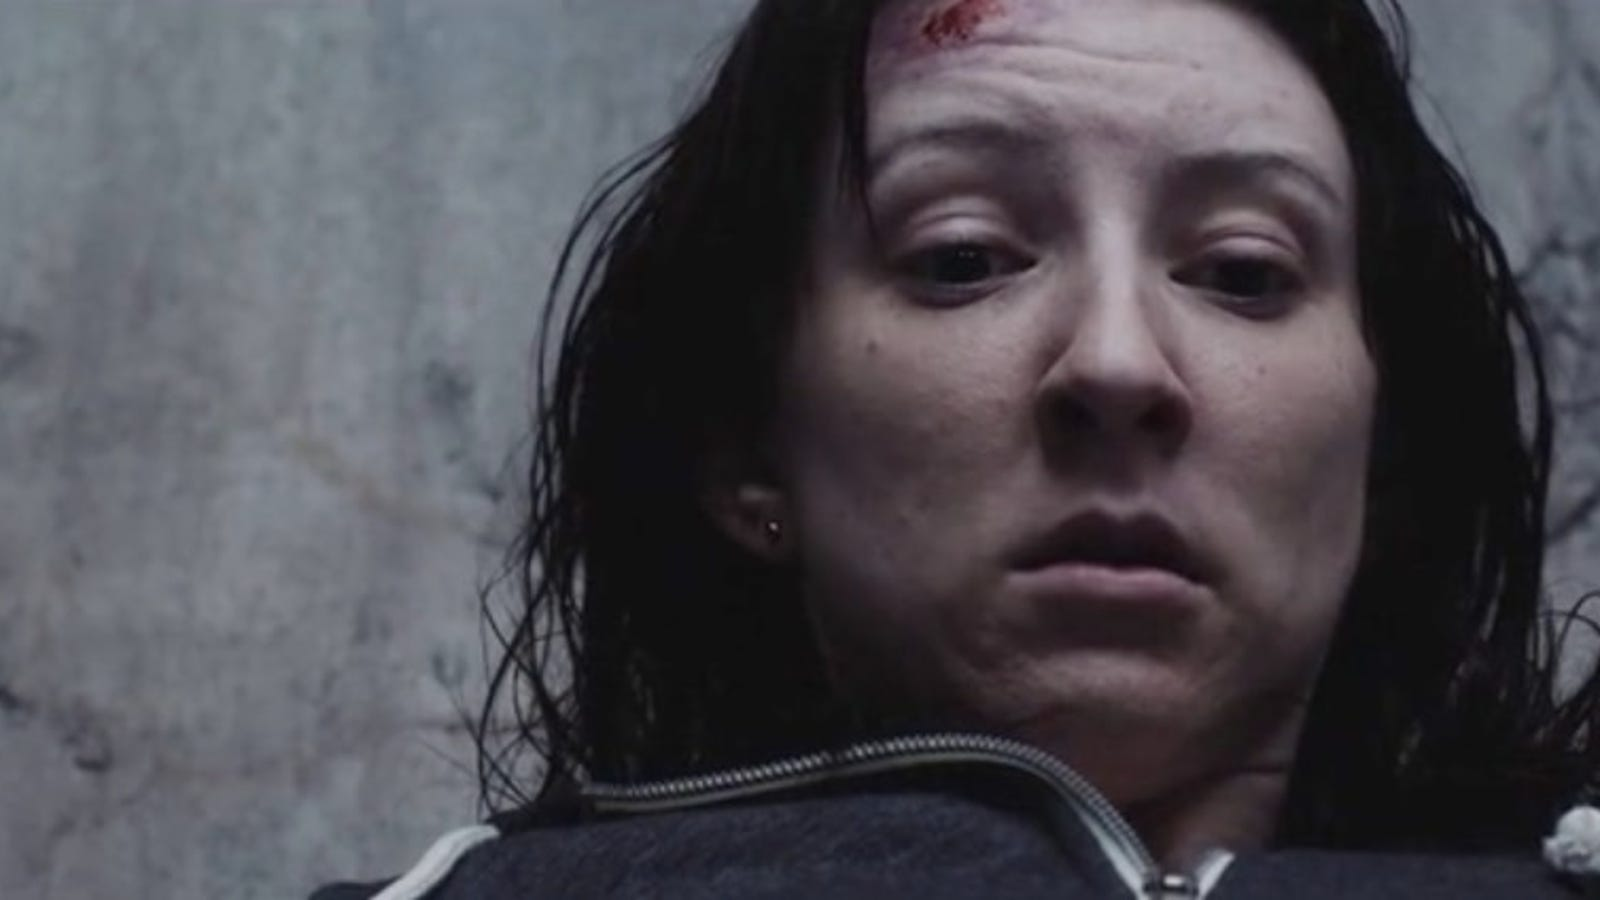 Just Try Not to White-Knuckle Your Way Through This Unbelievably Tense Short Horror Film